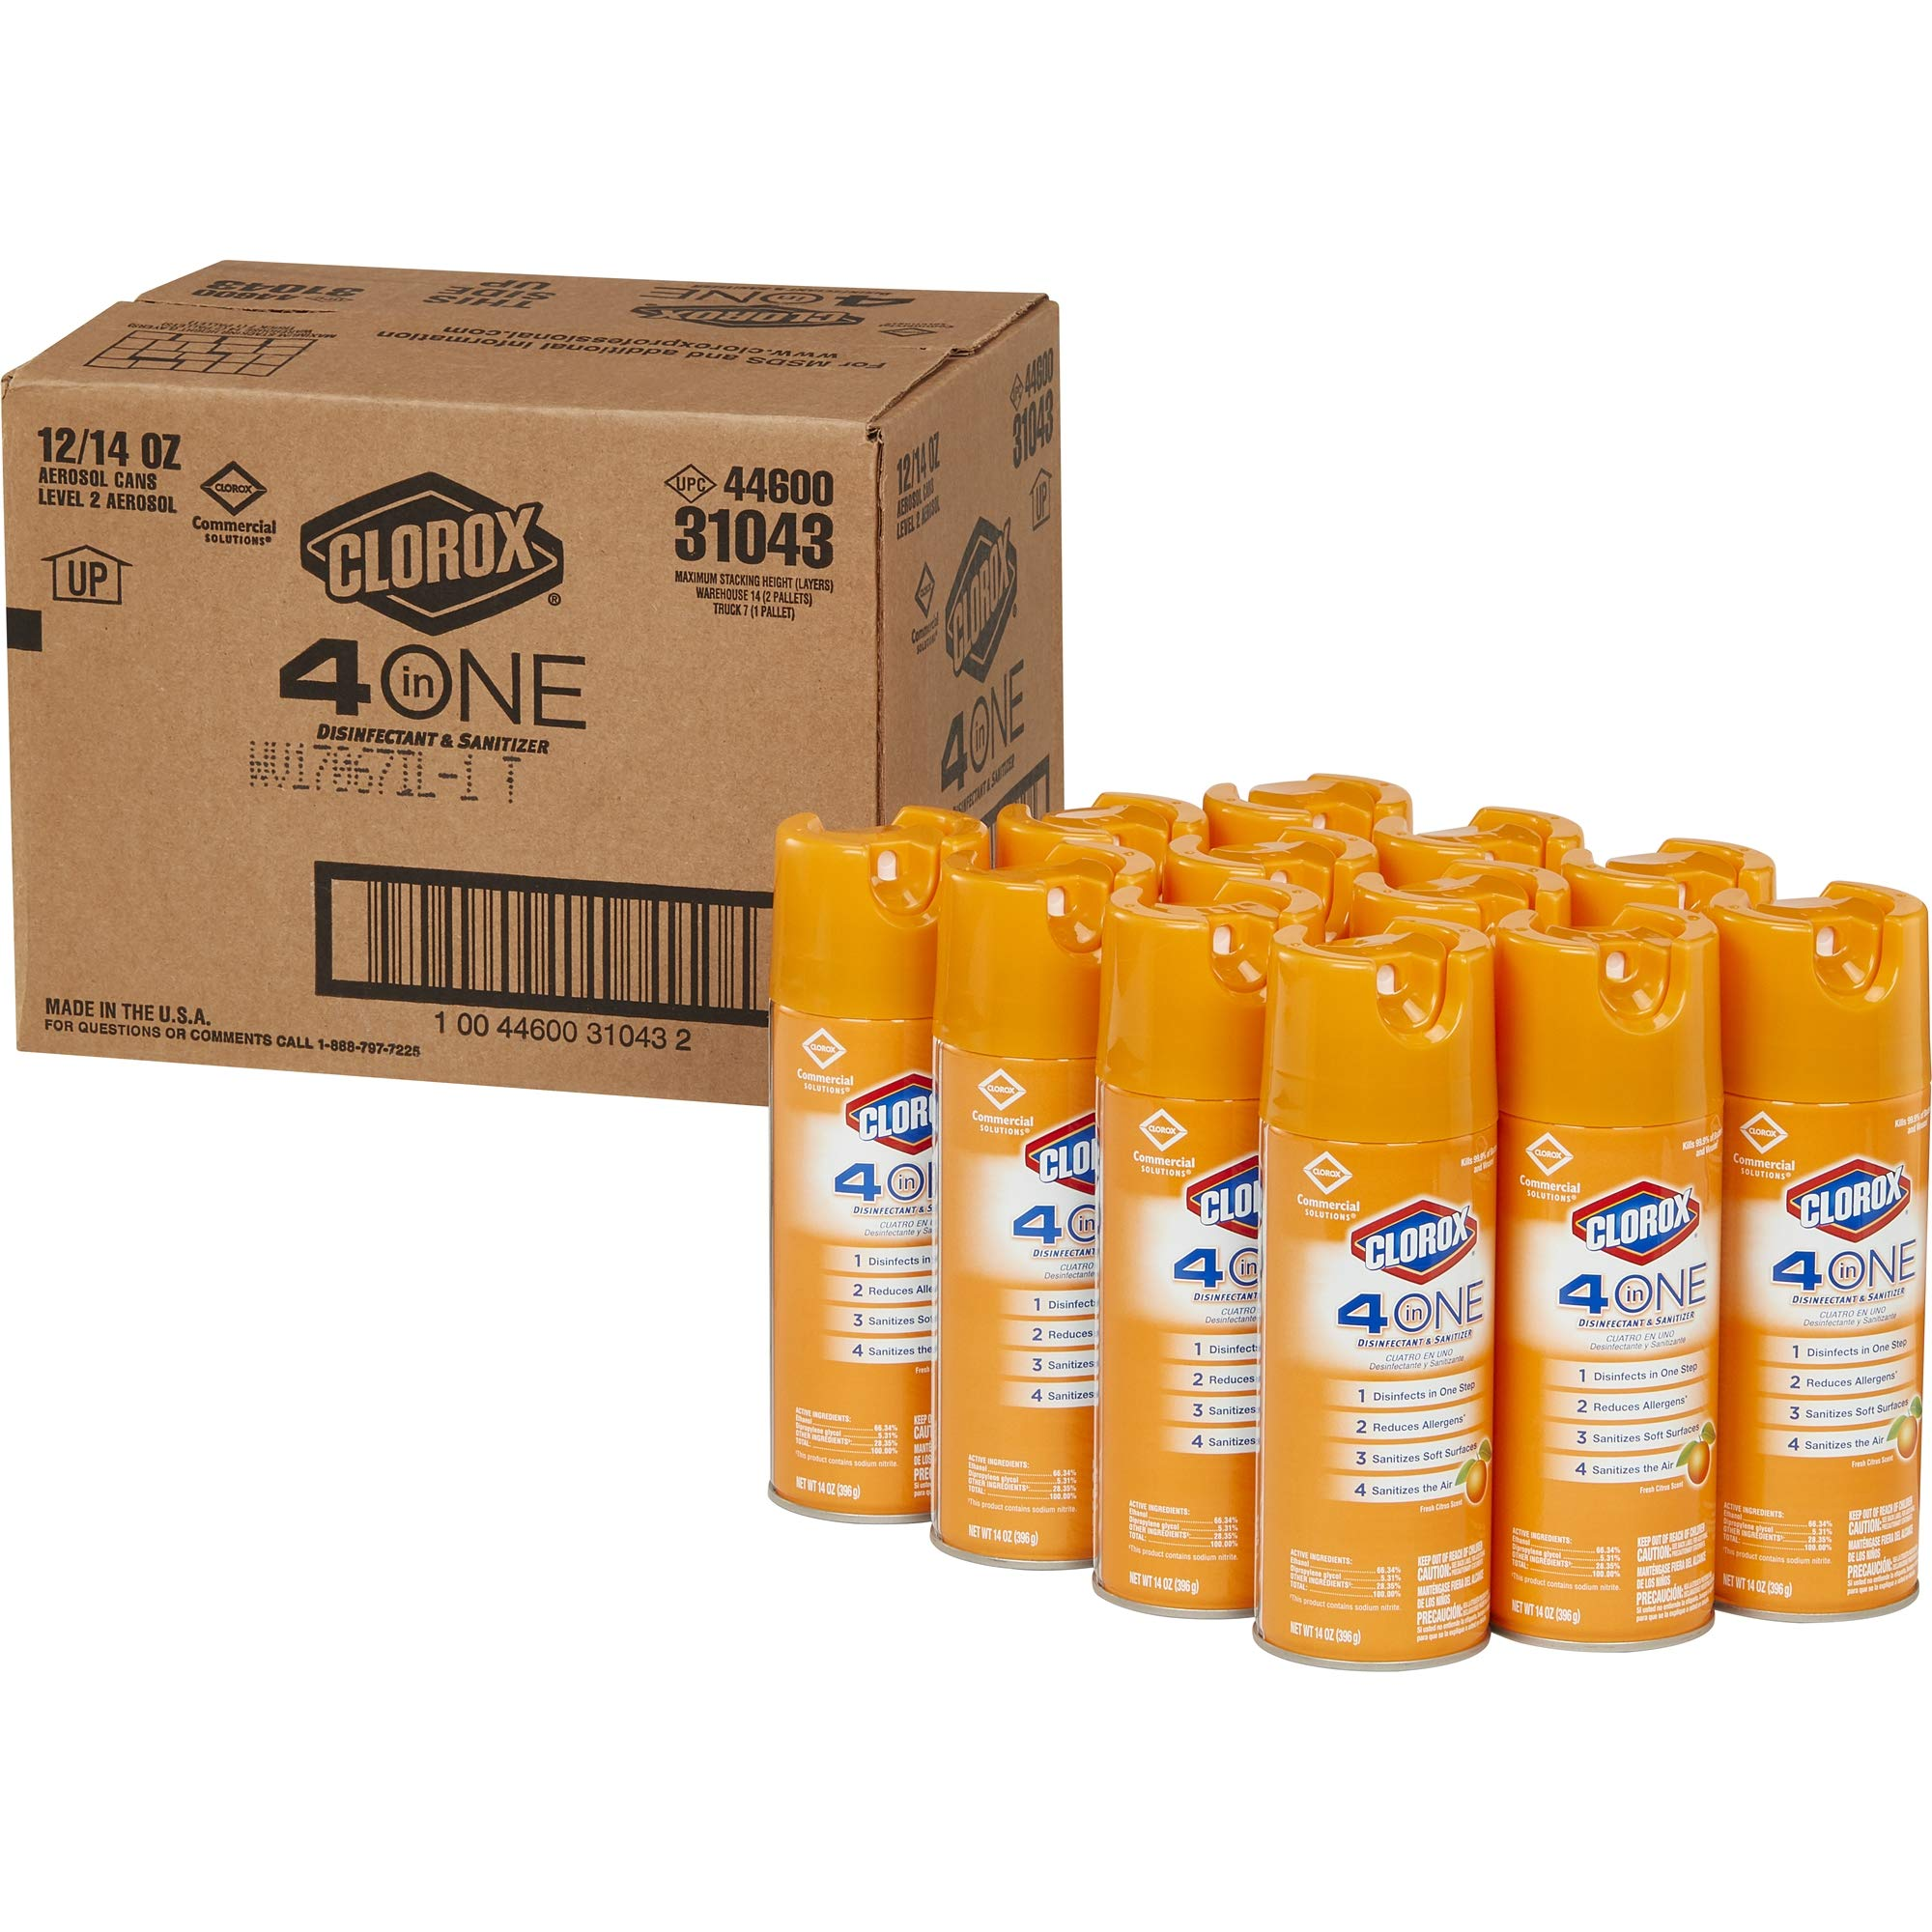 Clorox Commercial Solutions 4 in One Disinfecting Cleaner - 14 Ounce Spray Can, 12 Cans/Case (31043)